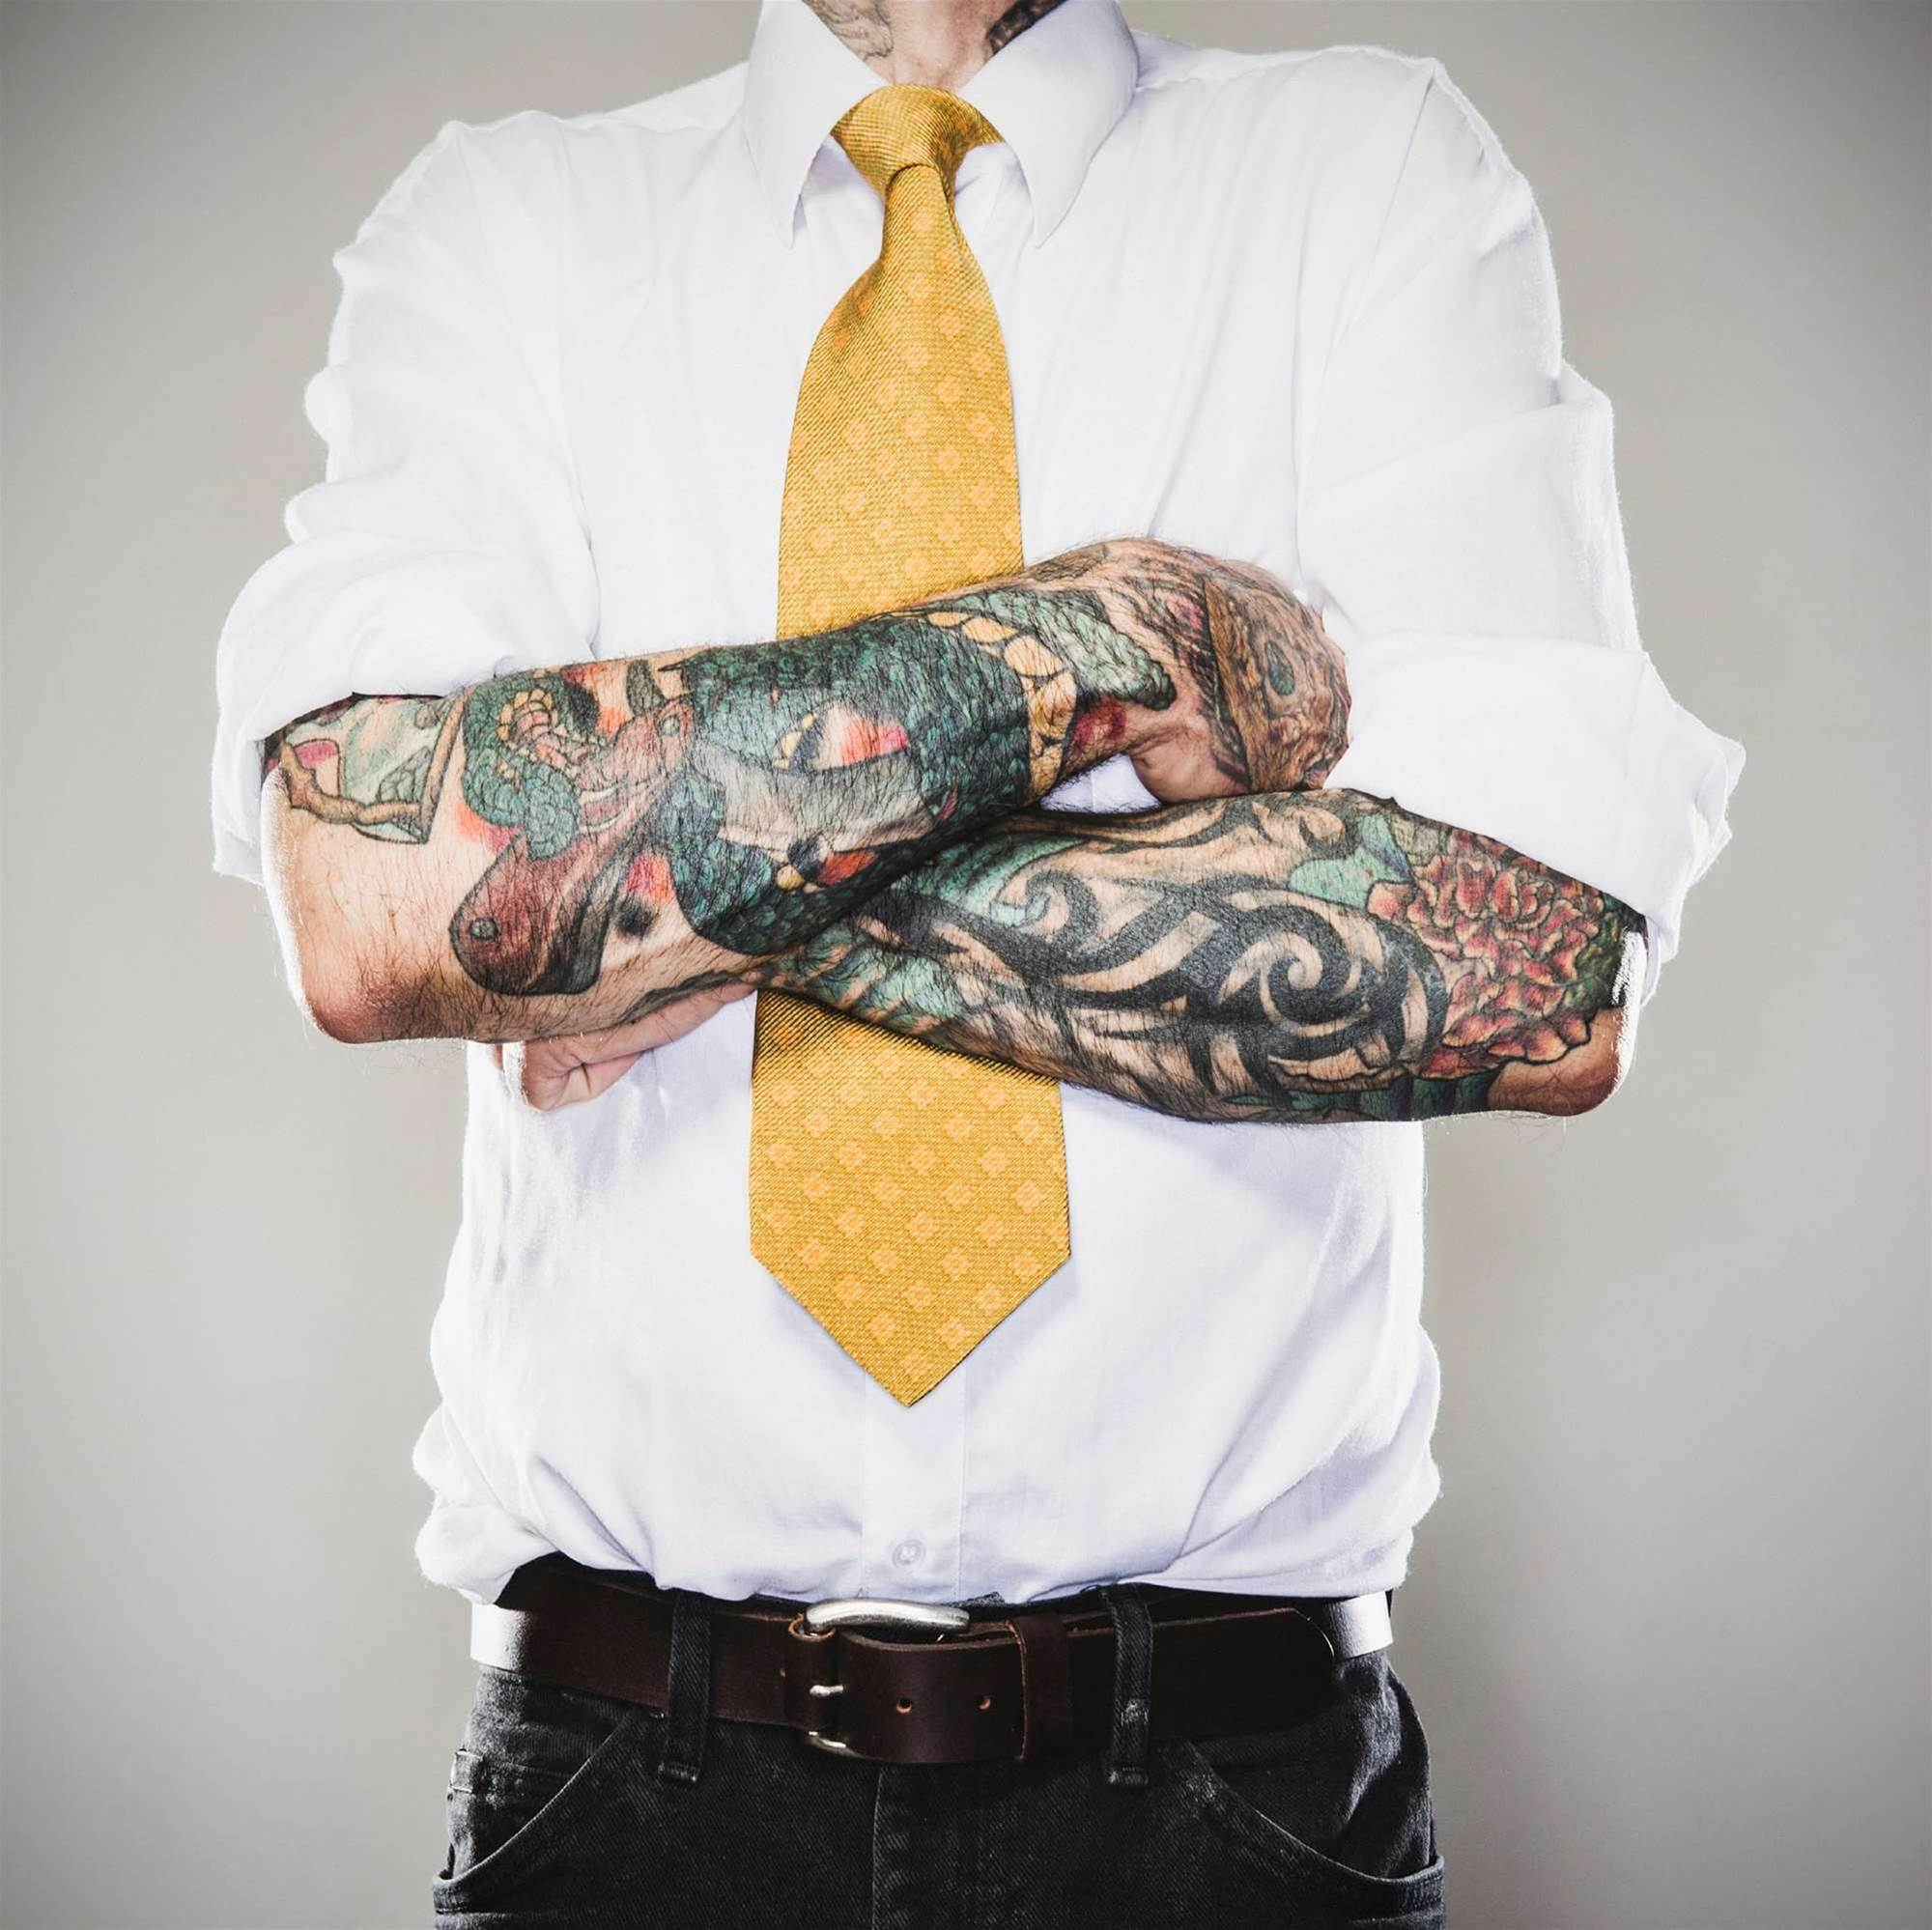 NIST tests biometrics algorithms for tattoo-matching database